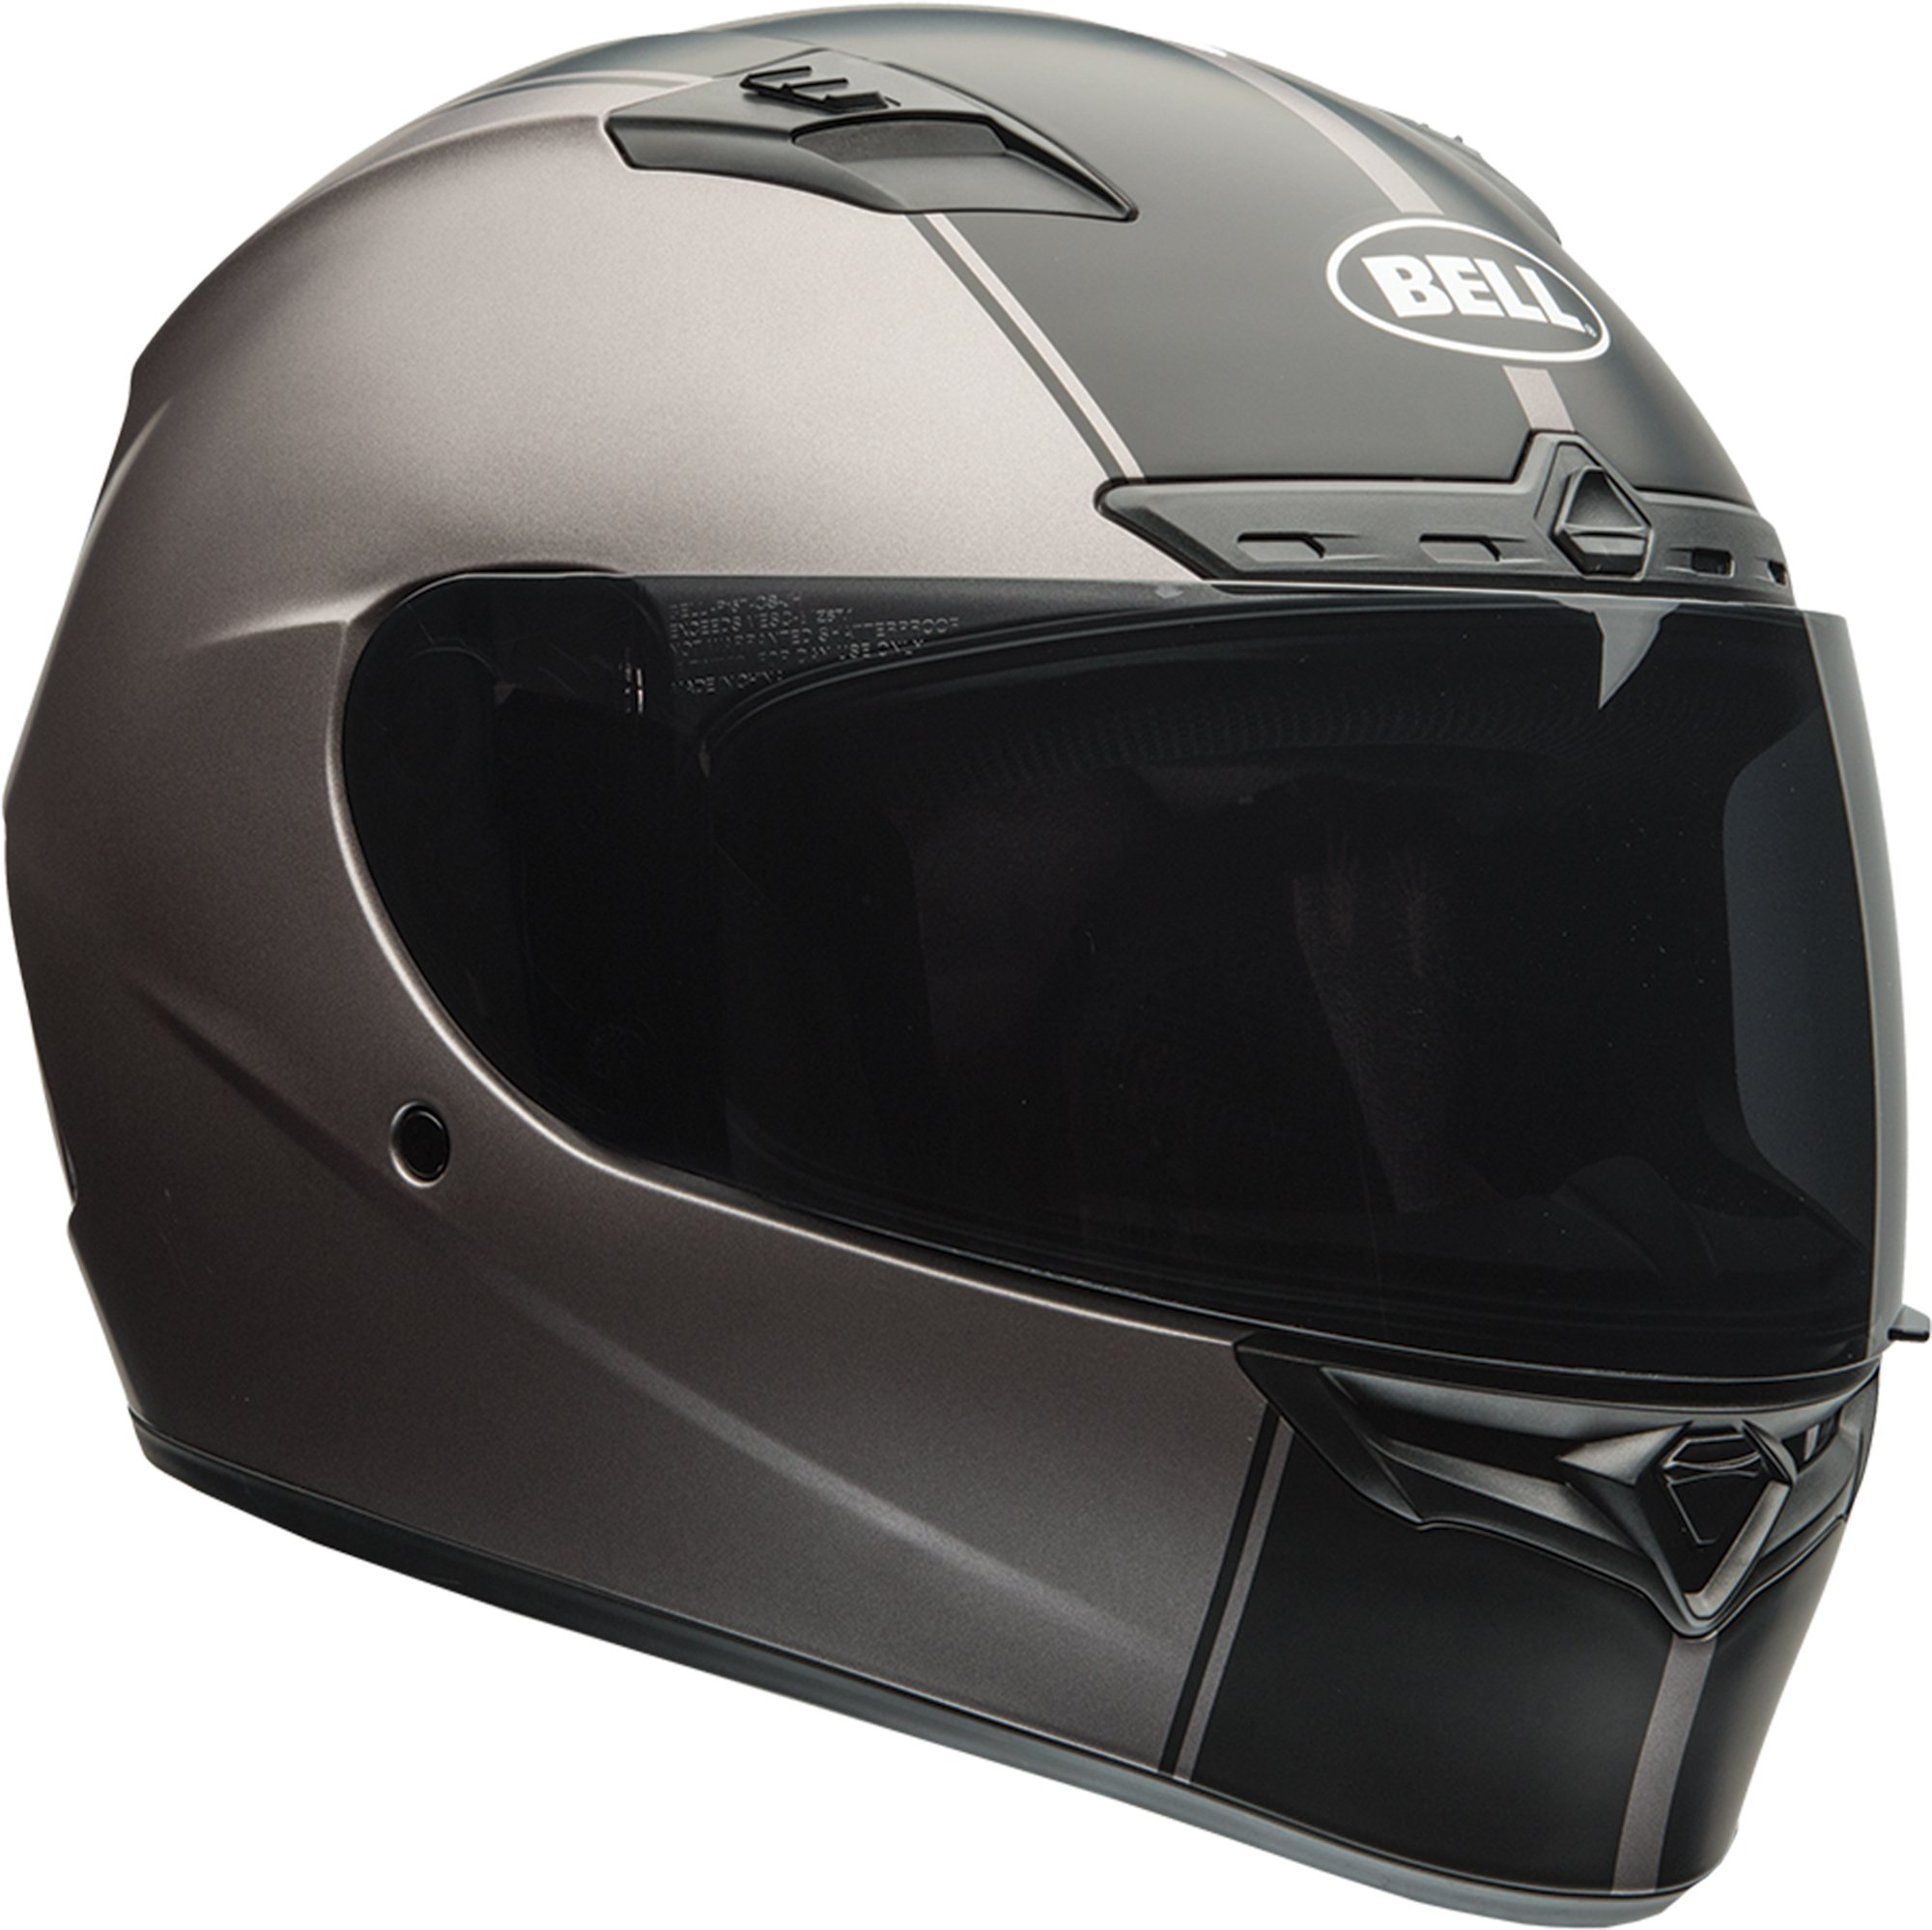 Bell Raly Adult Qualifier DLX On-Road Motorcycle Helmet - Matte Titanium / 2X-Large by Bell (Image #1)